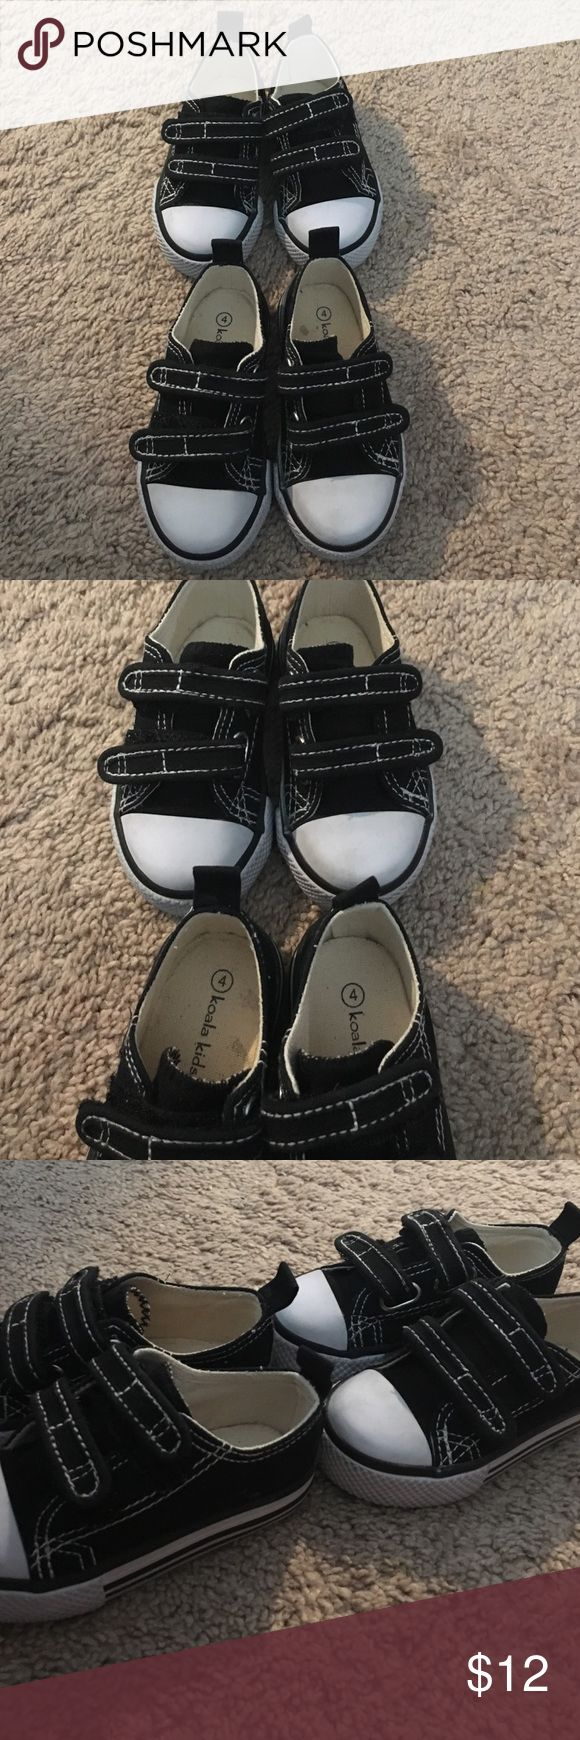 """KOALA KIDS • black/white shoes Adorable!!! Replica of the converse shoes. BabiesRus brand """"KOALA KIDS""""  size 4 my twins were 6-12 months while wearing these.  I have two pairs selling one pair each. Very gently used for a short amount of time. Normal signs of wear. ✨Come from a clean/smoke free home. 10% off if you buy 2+more Bundle. Serious inquiries only and NO trade. Everything is final sale✨ Koala Kids Shoes Sneakers"""